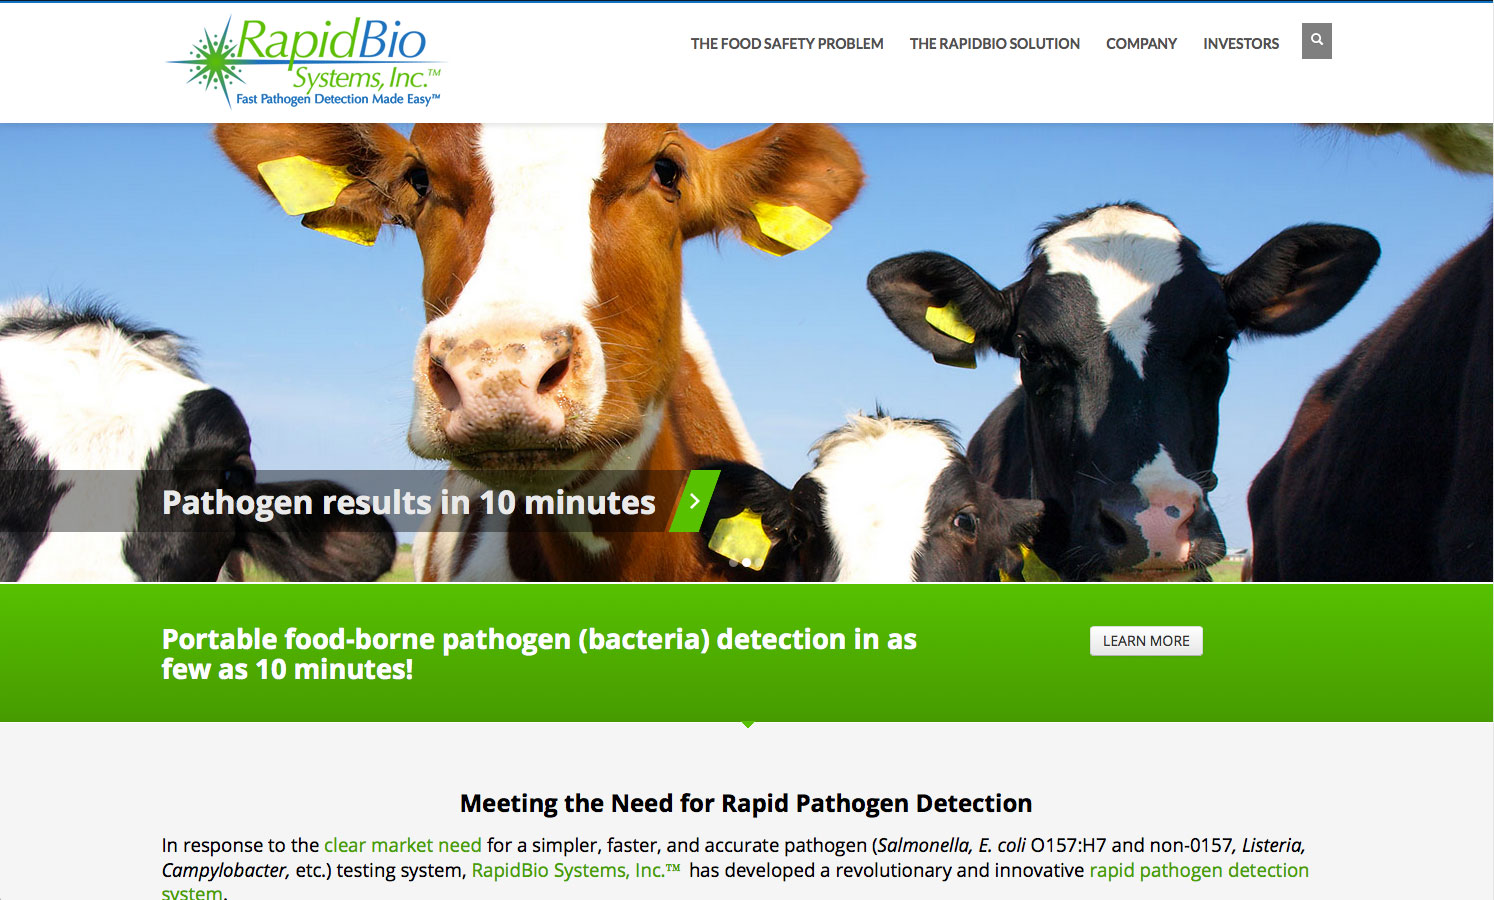 RapidBio Systems Website